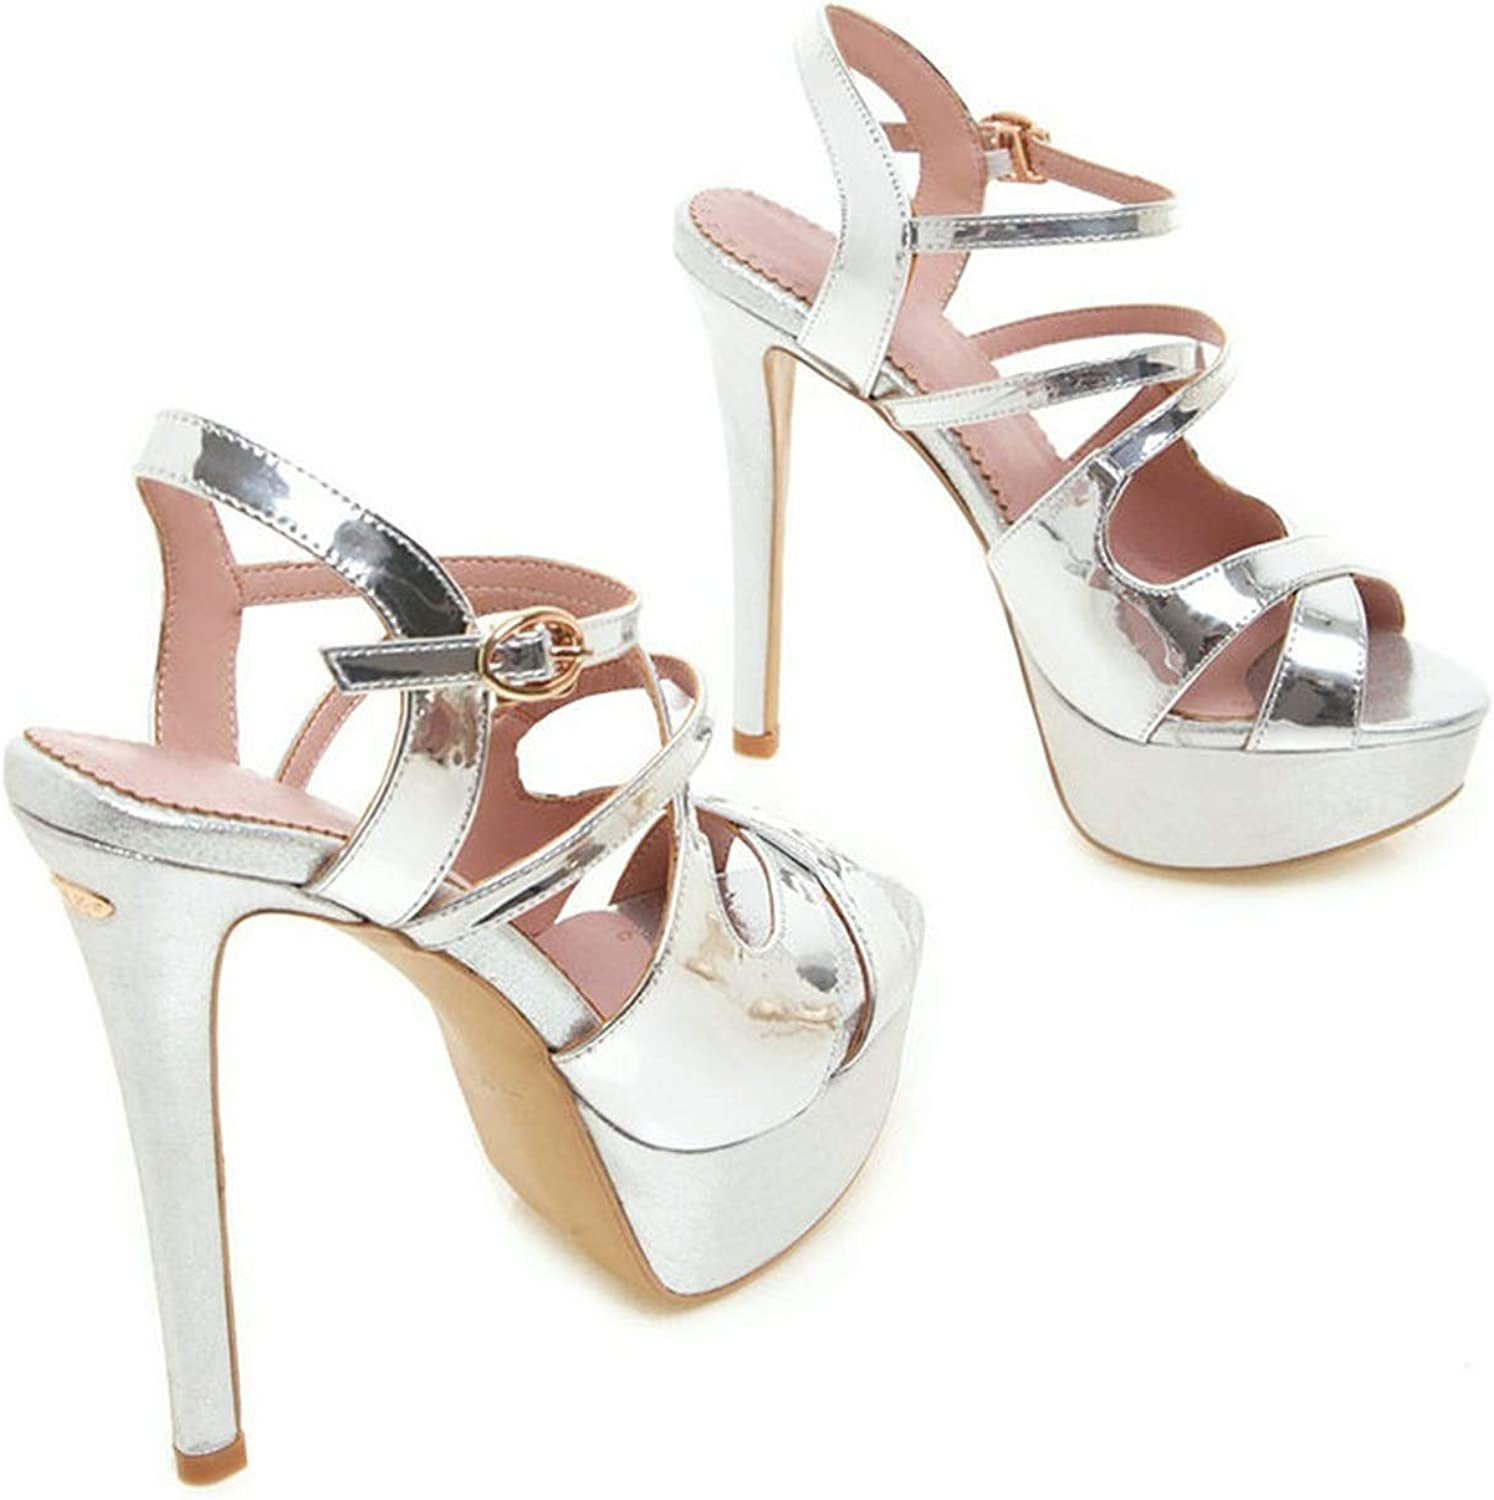 Ladies Sandals Patent Leather Thin Super High Heel Round Open-Toed Cut,